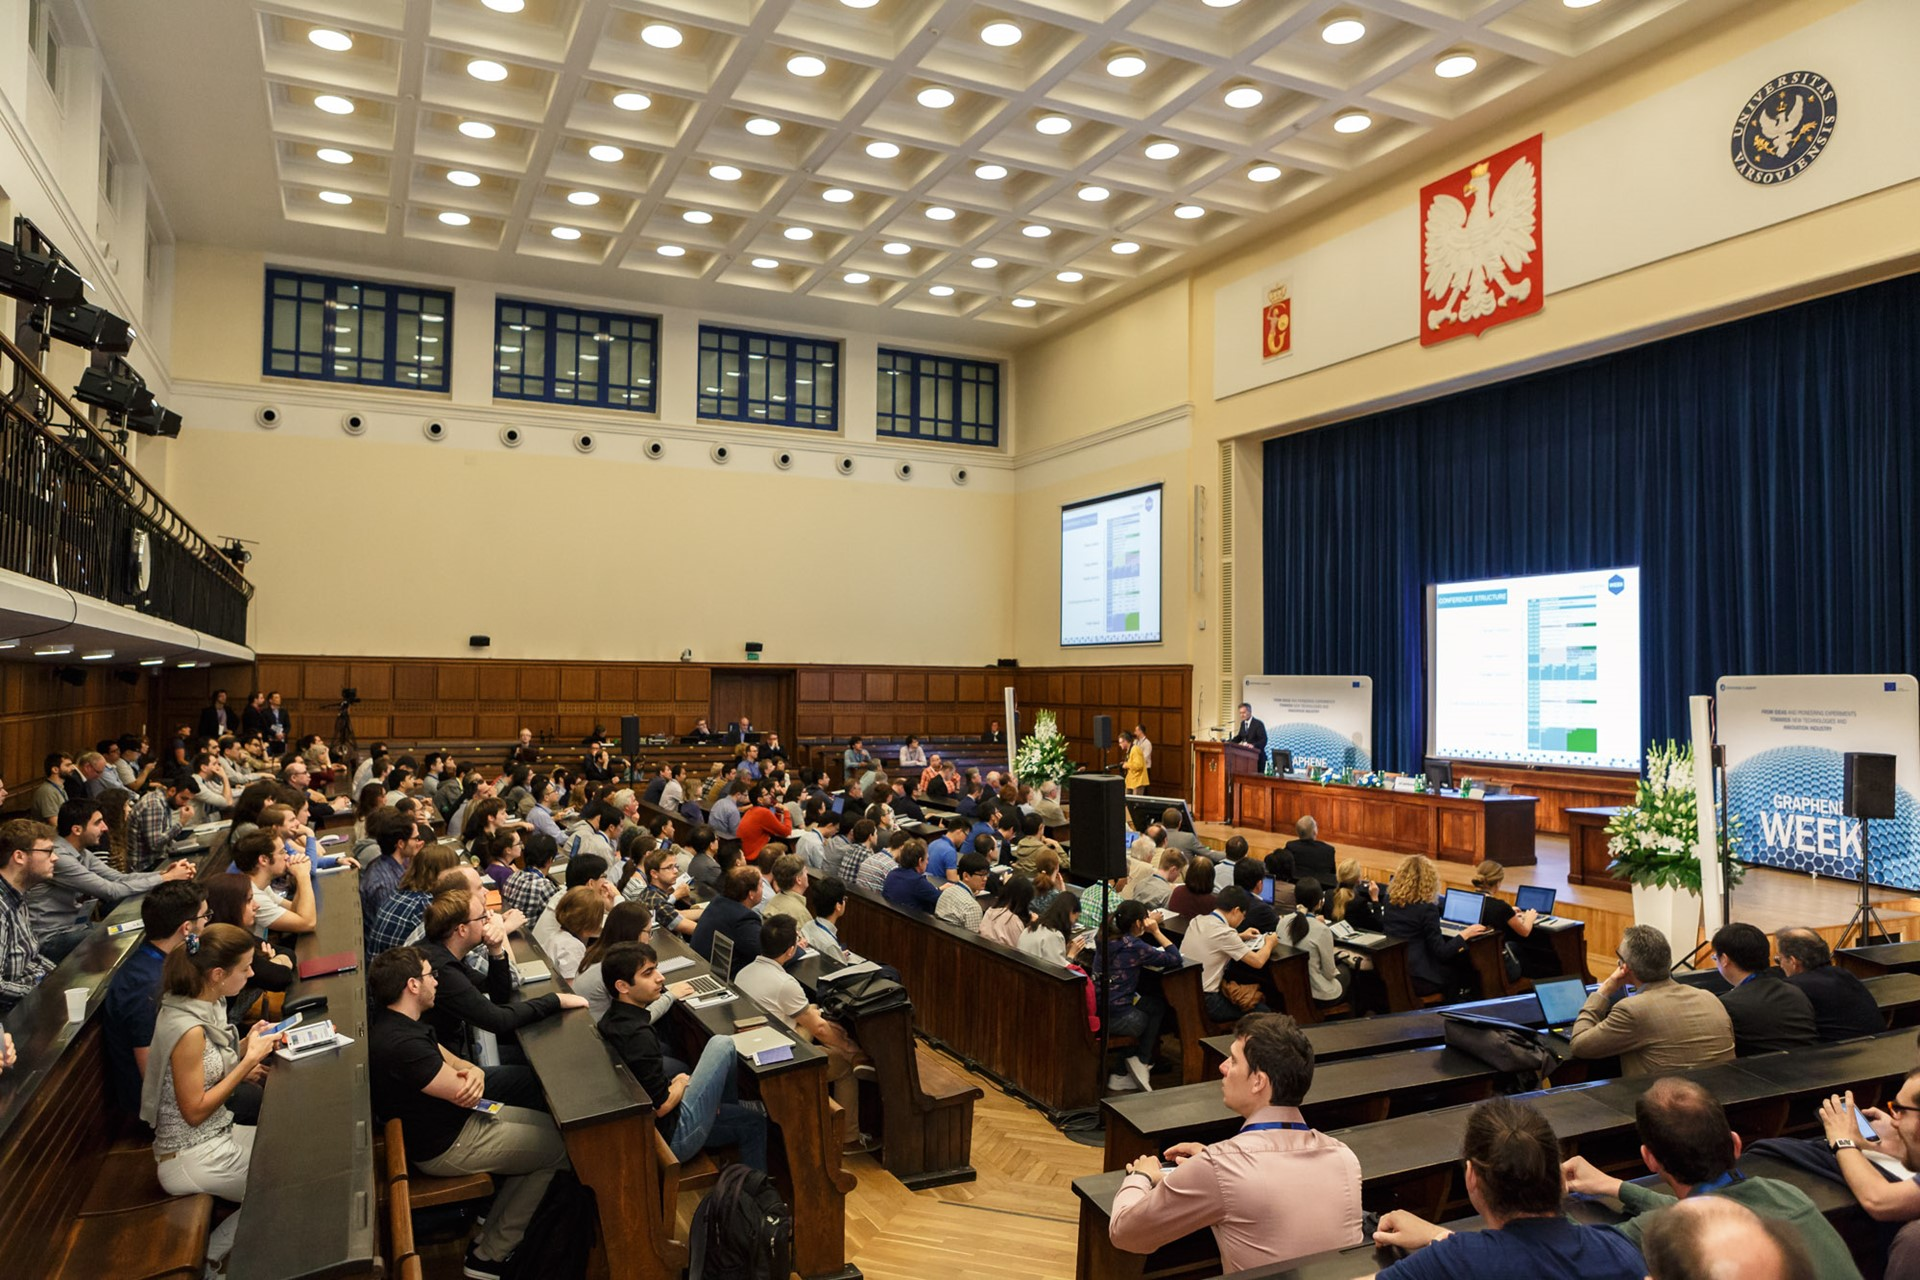 Opening session of the Graphene Week 2016